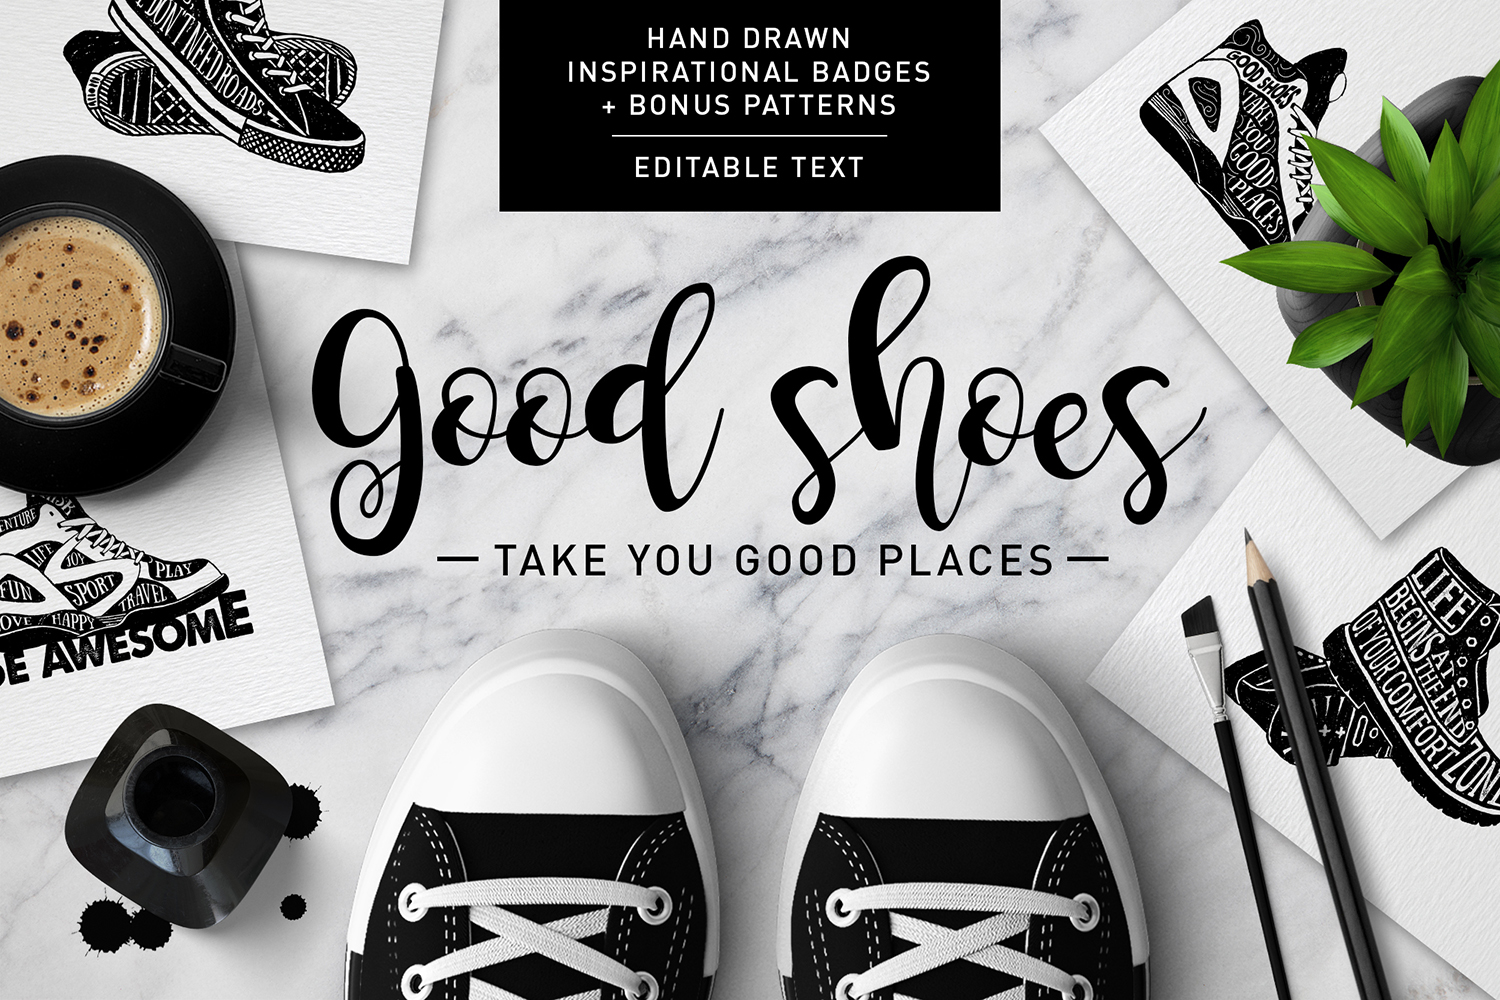 Good Shoes - 8 Inspirational Badges Graphic By Cosmic Store